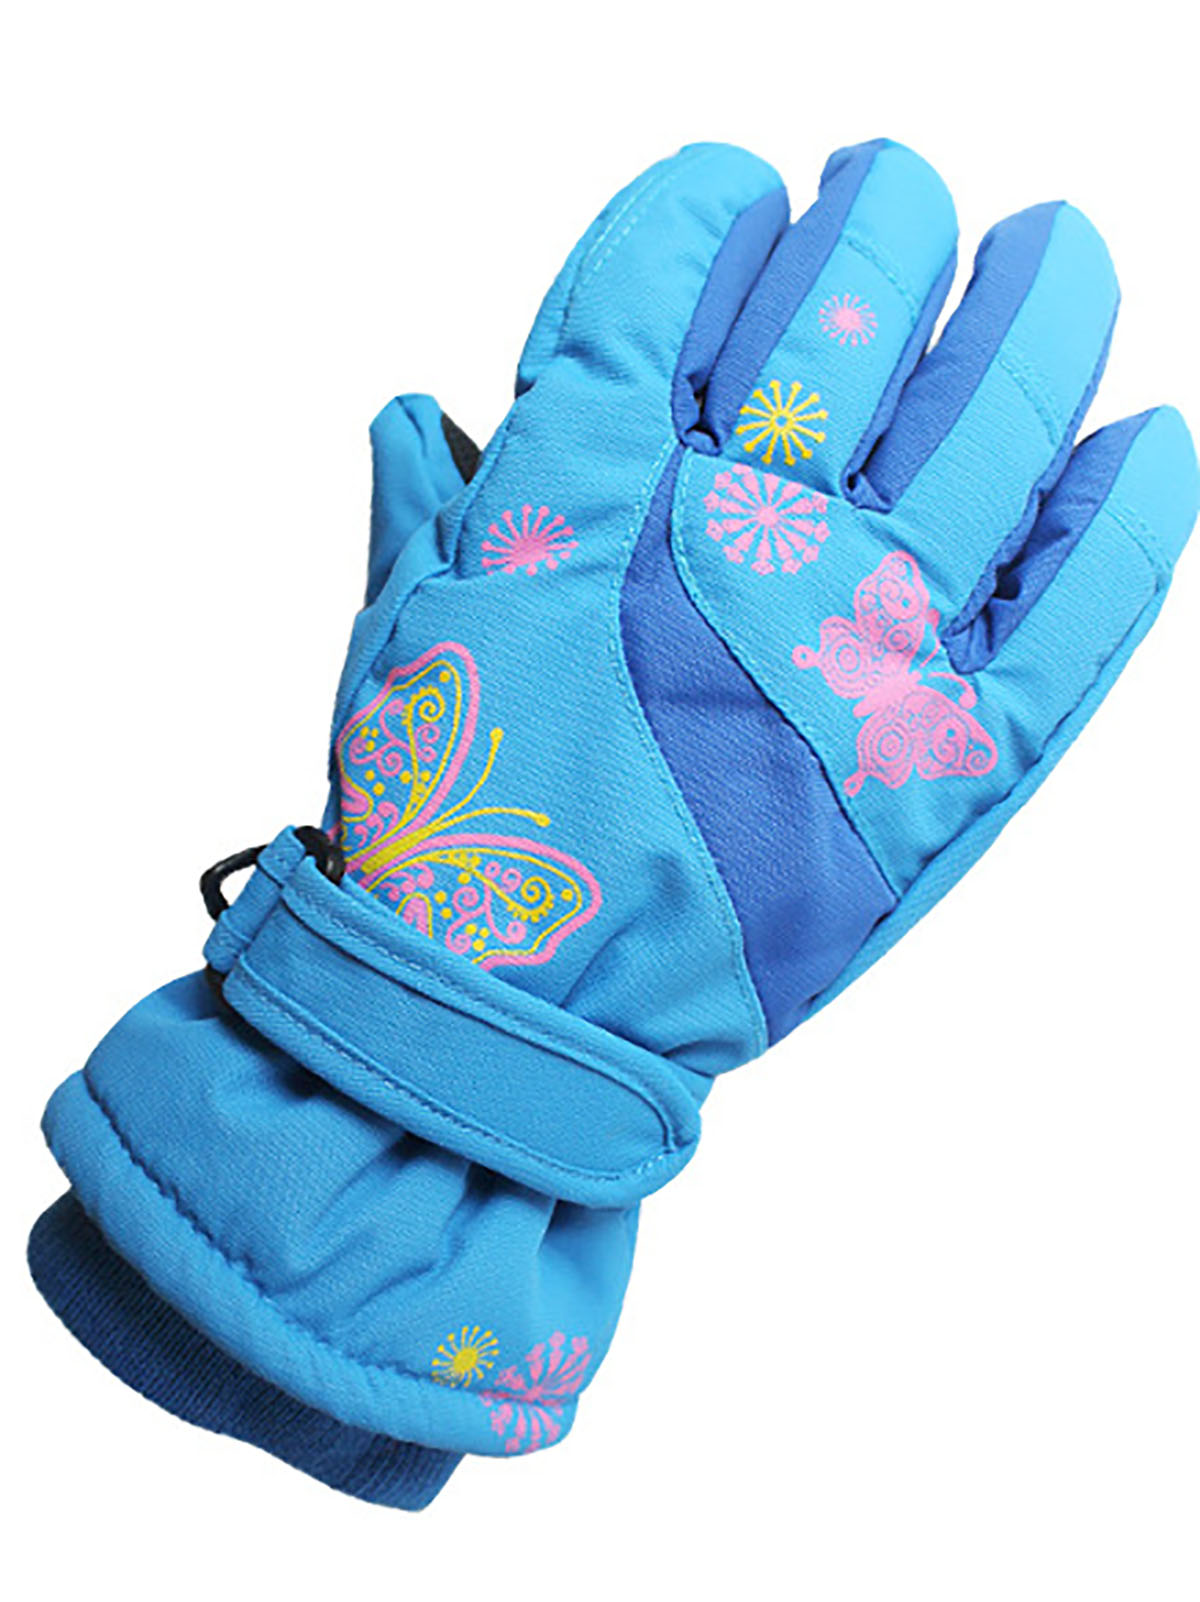 Outdoor ski warm and cold protection gloves for children aged 4-10